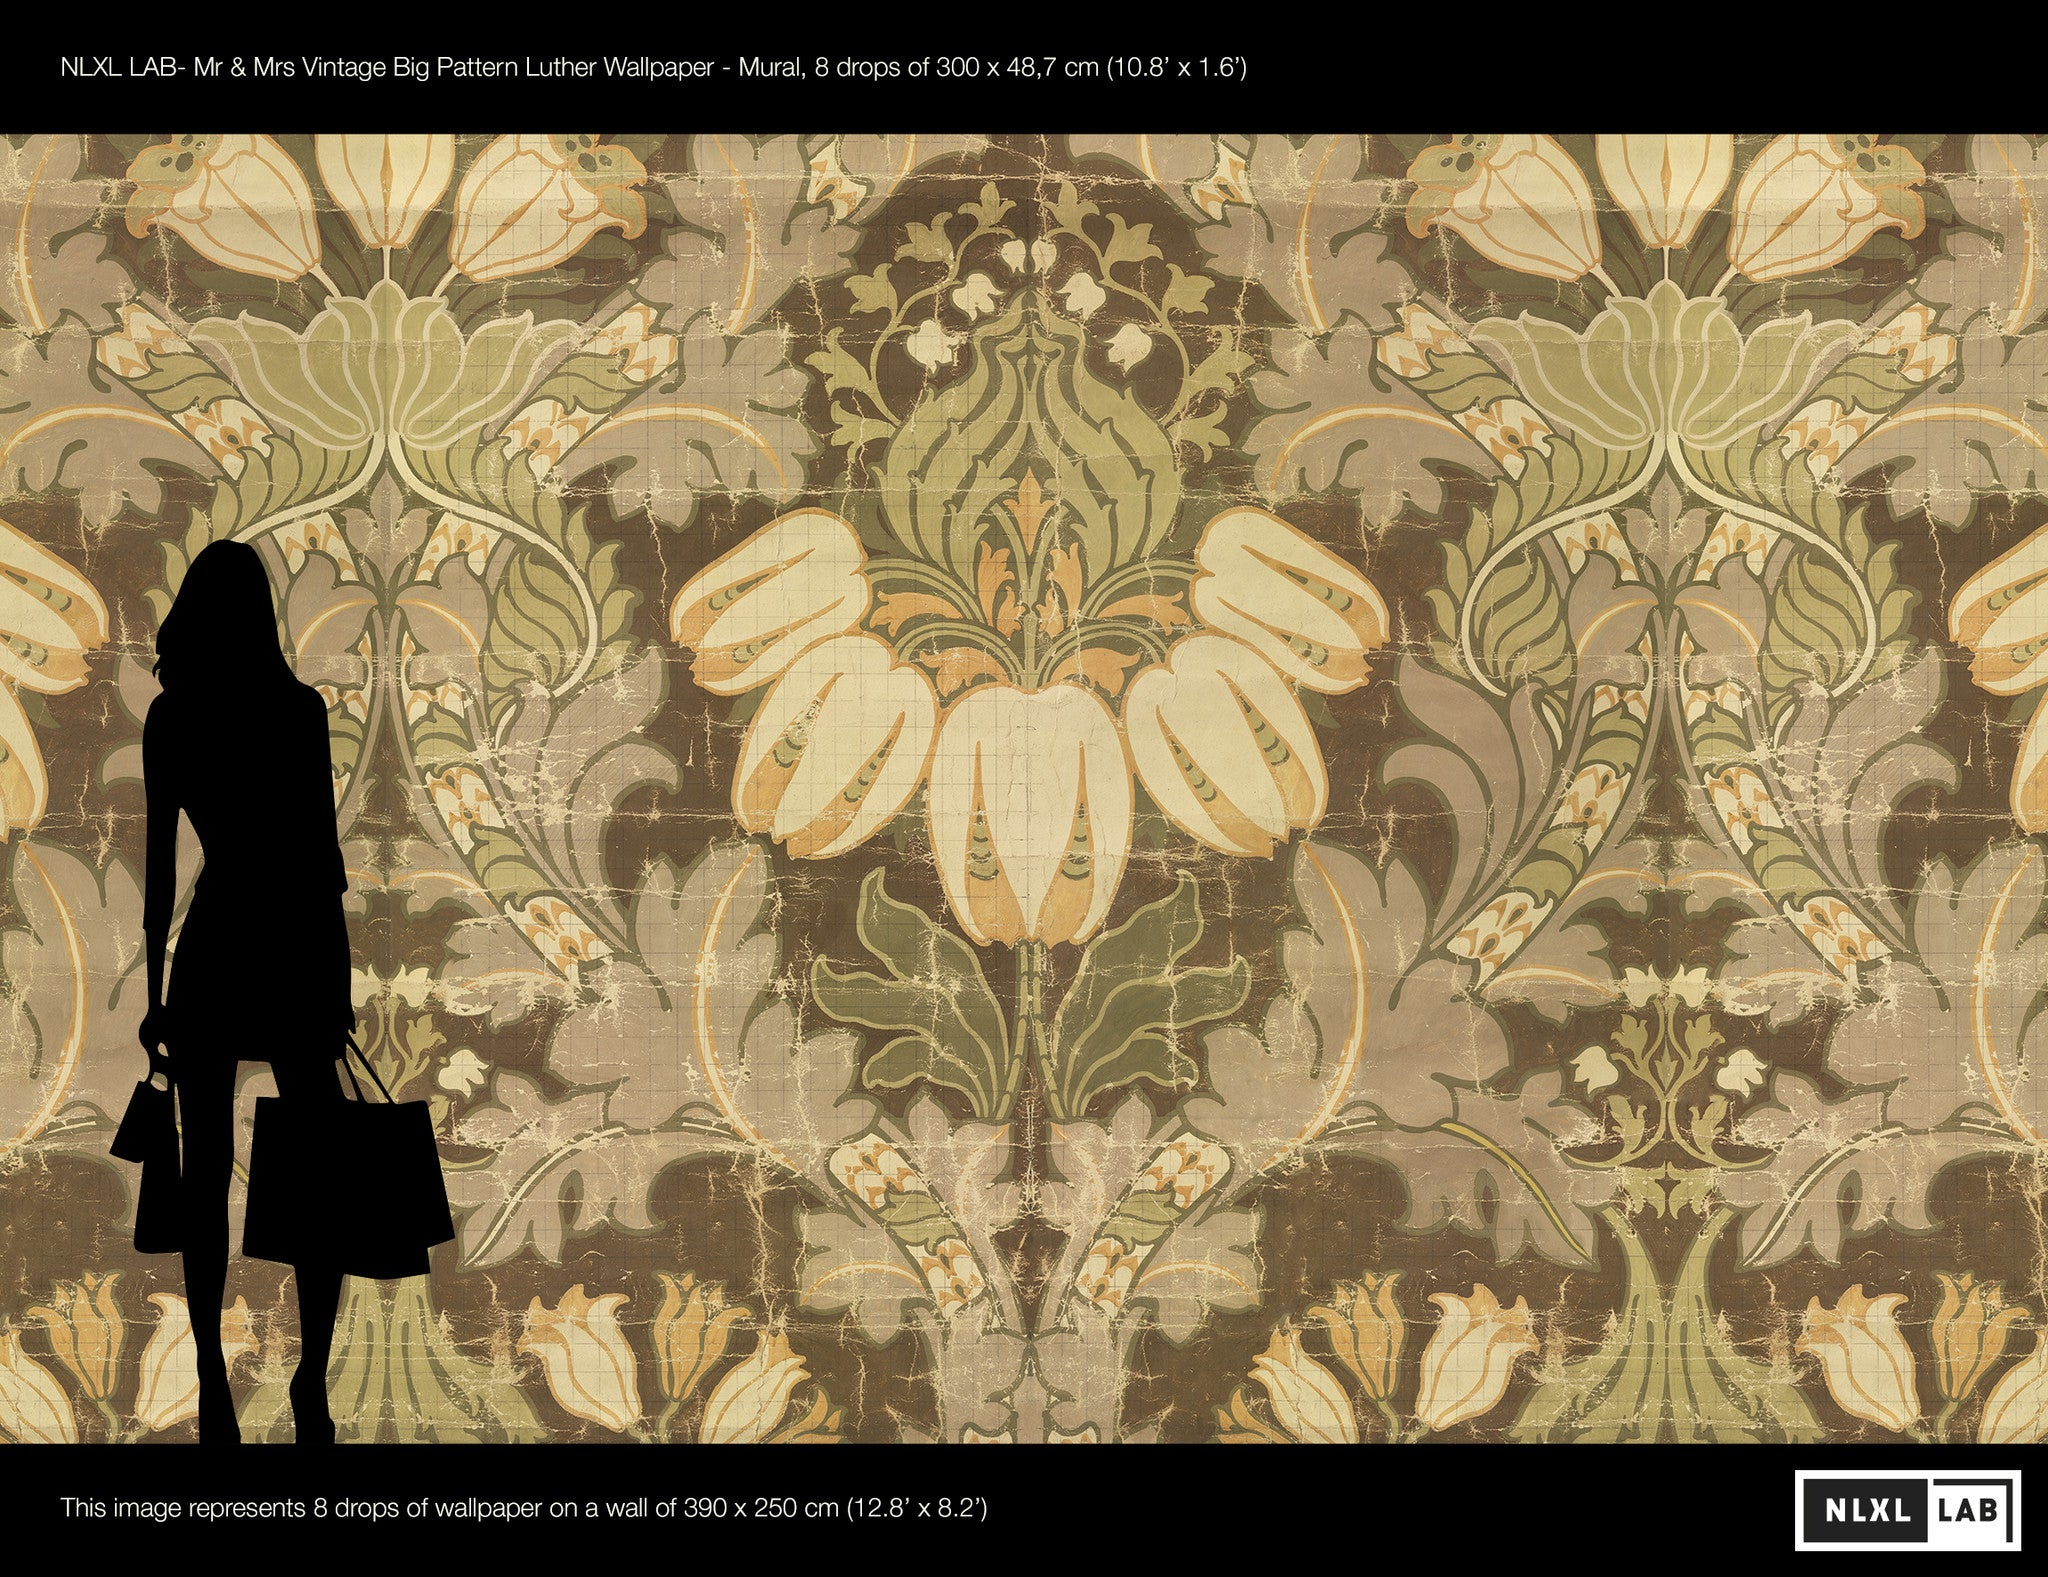 Big Pattern Luther Wall Mural by Mr. and Mrs. Vintage for NLXL ...